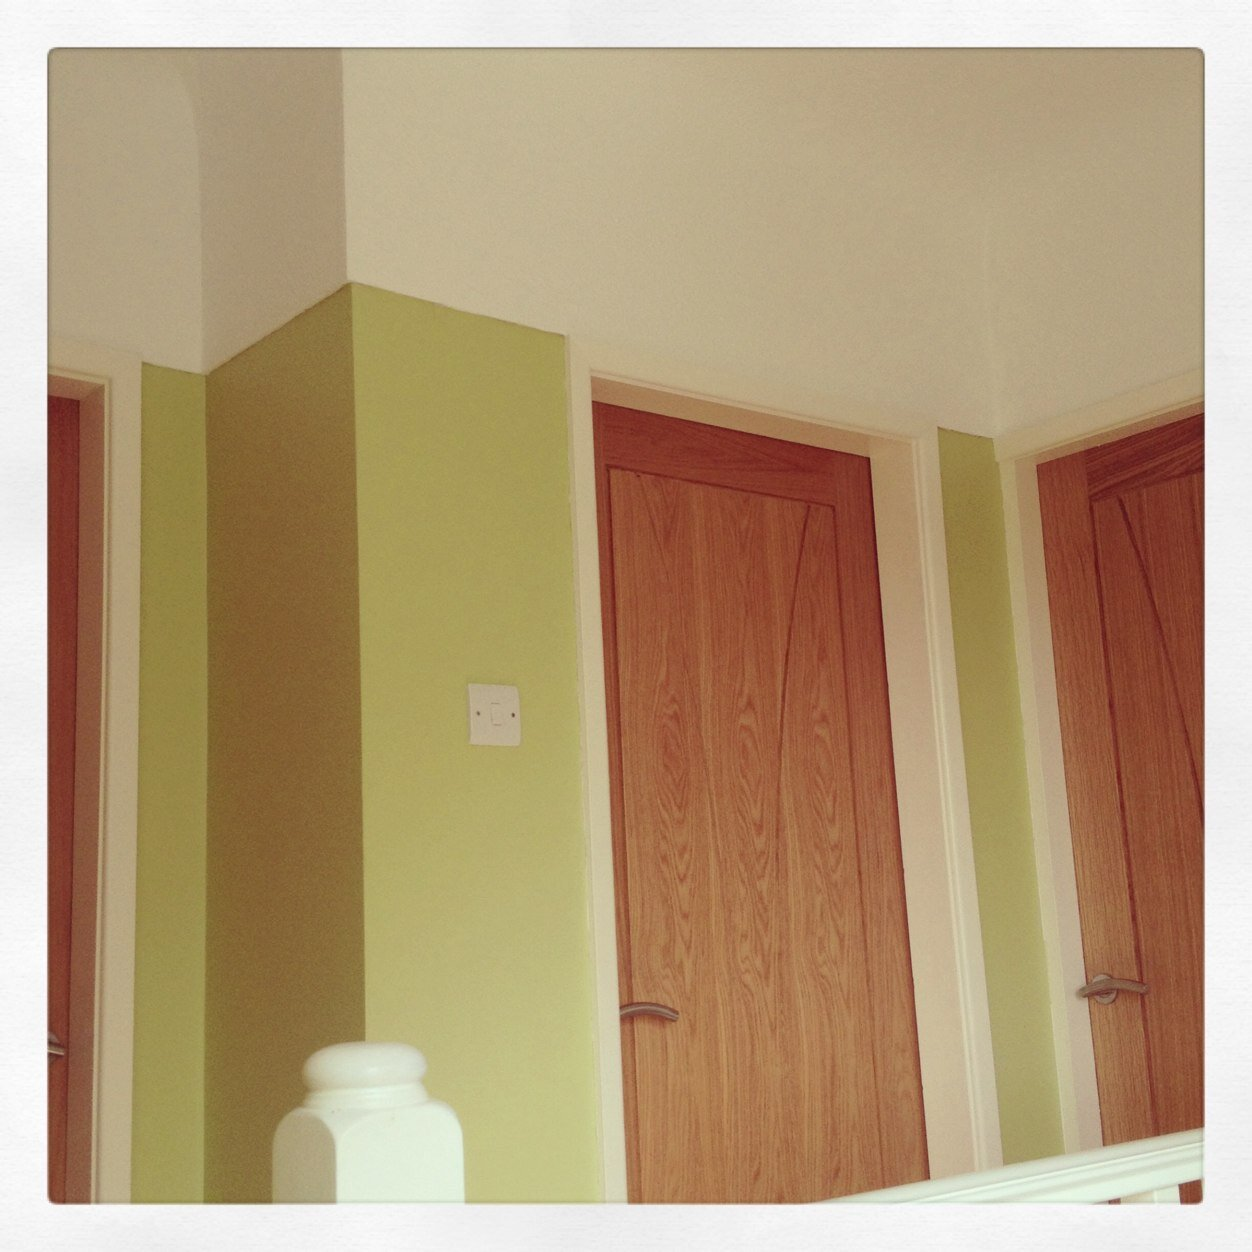 Wirral Door Fitting & Wirral Door Fitting (@Wirral_Door_Fit) | Twitter Pezcame.Com